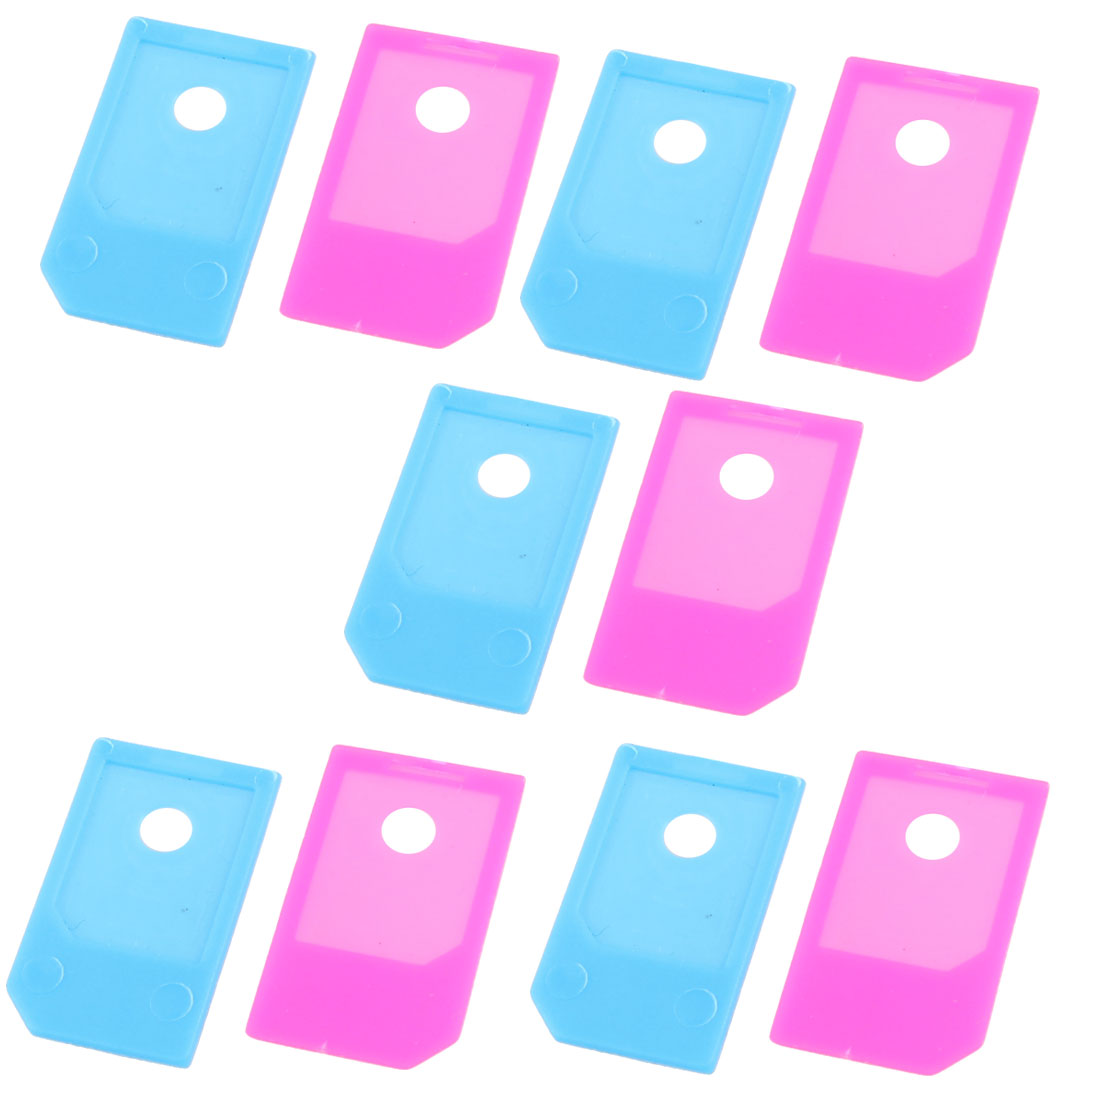 10 Pcs Light Blue Fuchsia Micro SIM to SIM Adapter for Phone